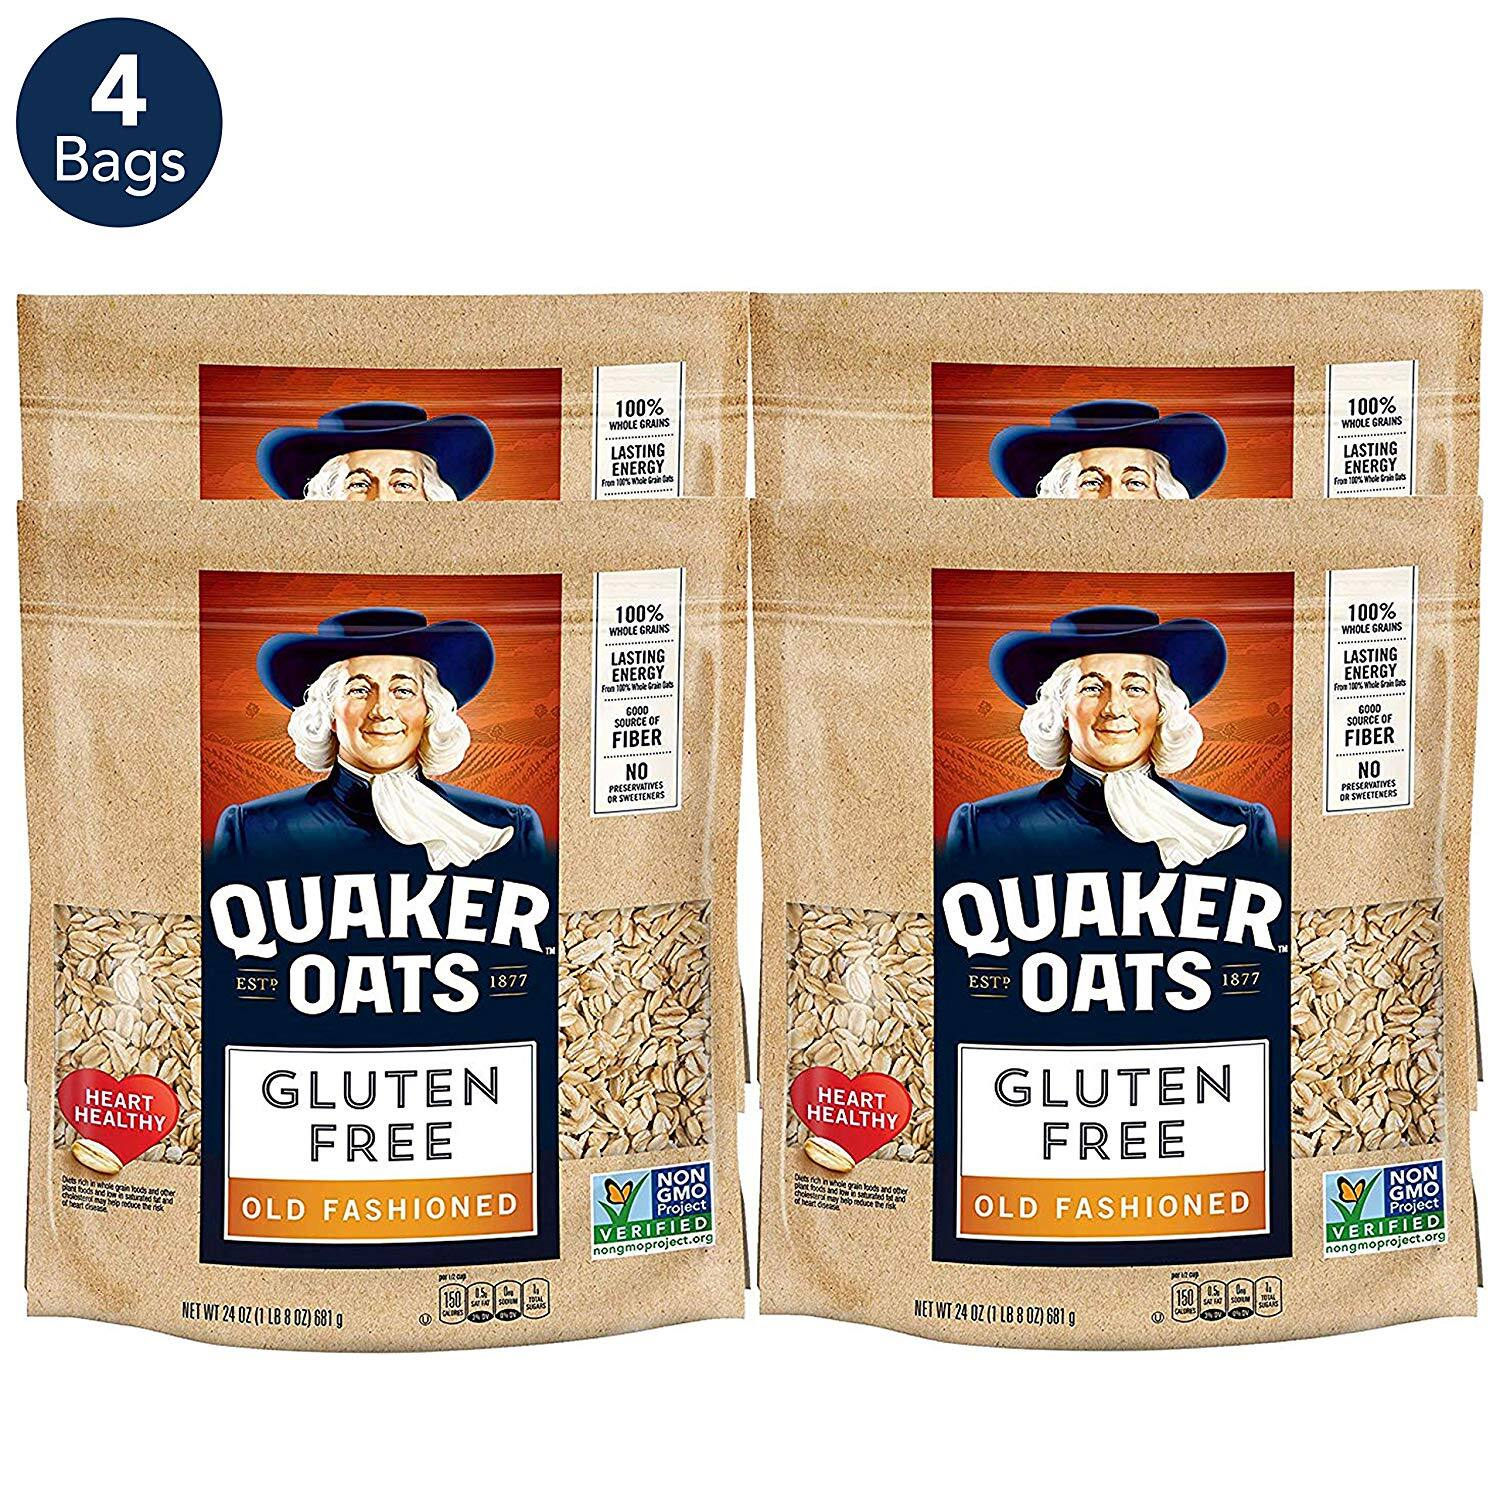 4-Ct. 24oz. ea. Quaker Gluten Free Old Fashioned Rolled Oats $13.99 5% or $11.99 15% AC w/s&s